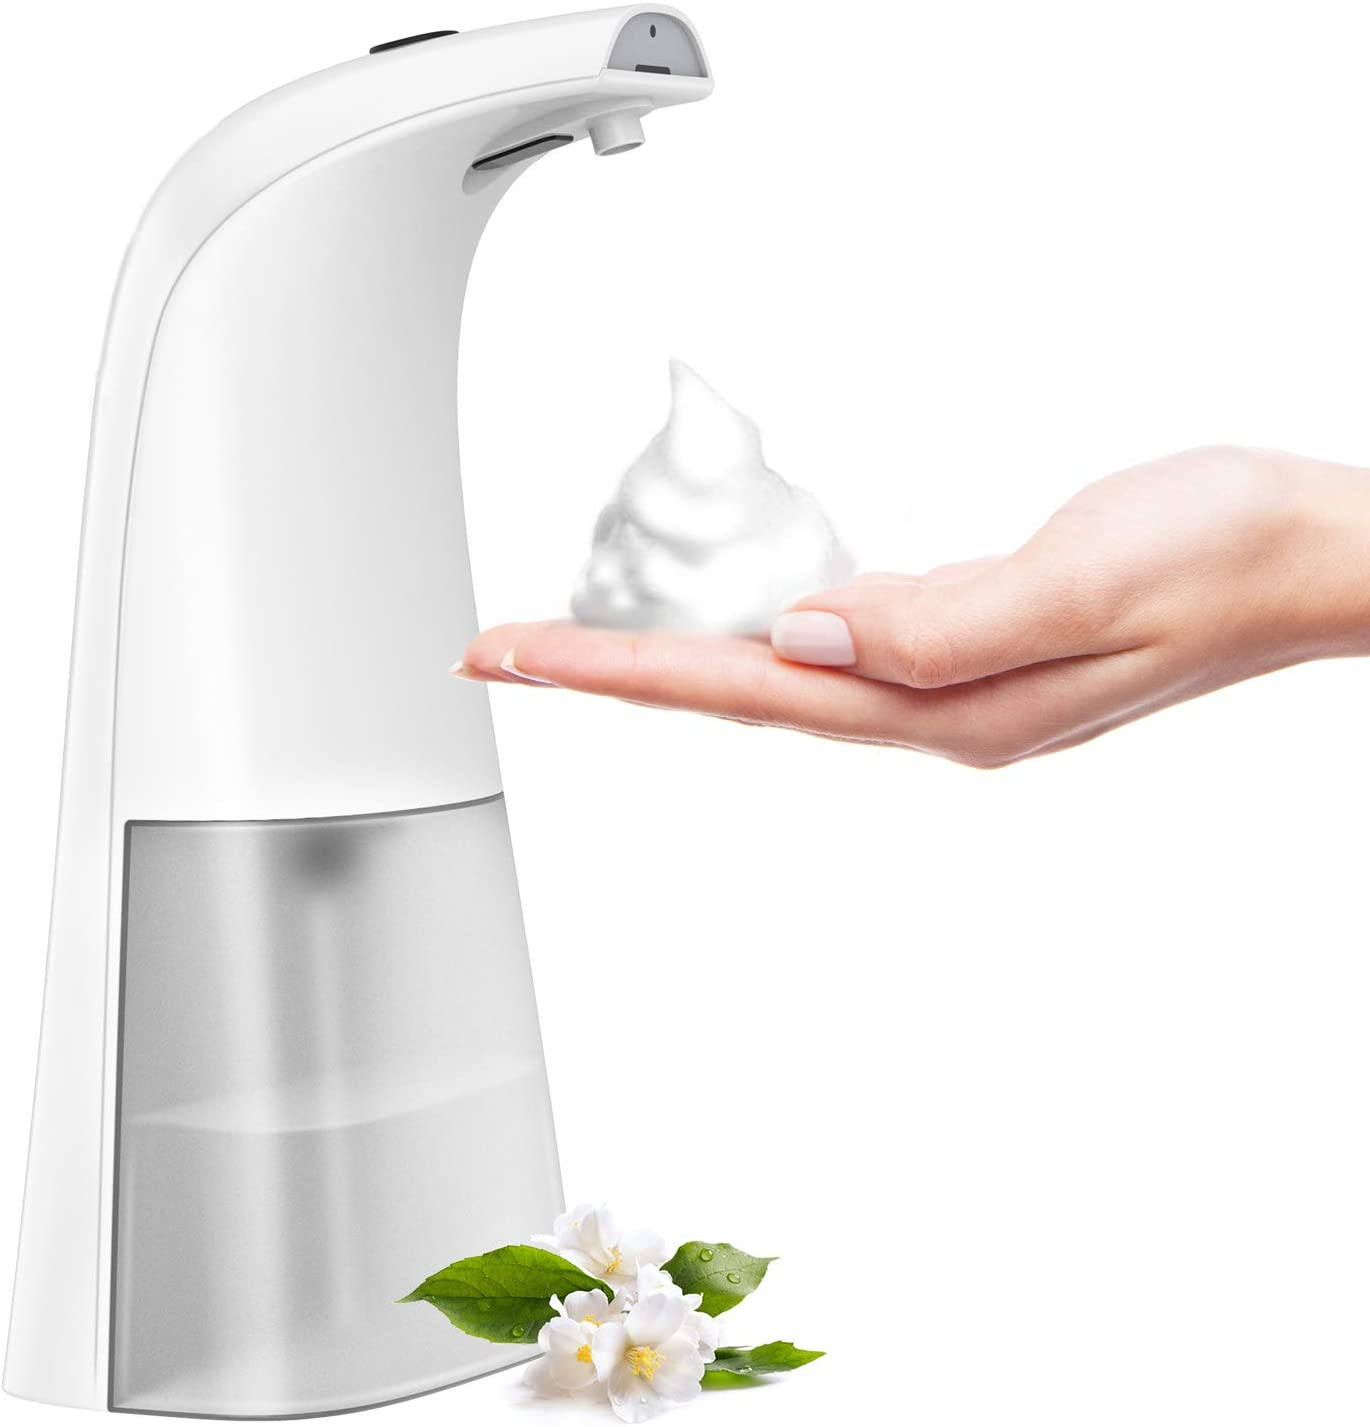 HOMLEX Automatic Soap Dispenser,Touchless Soap Dispenser Touchless,Dual Foam Modes for Adults and Kids White+Clear